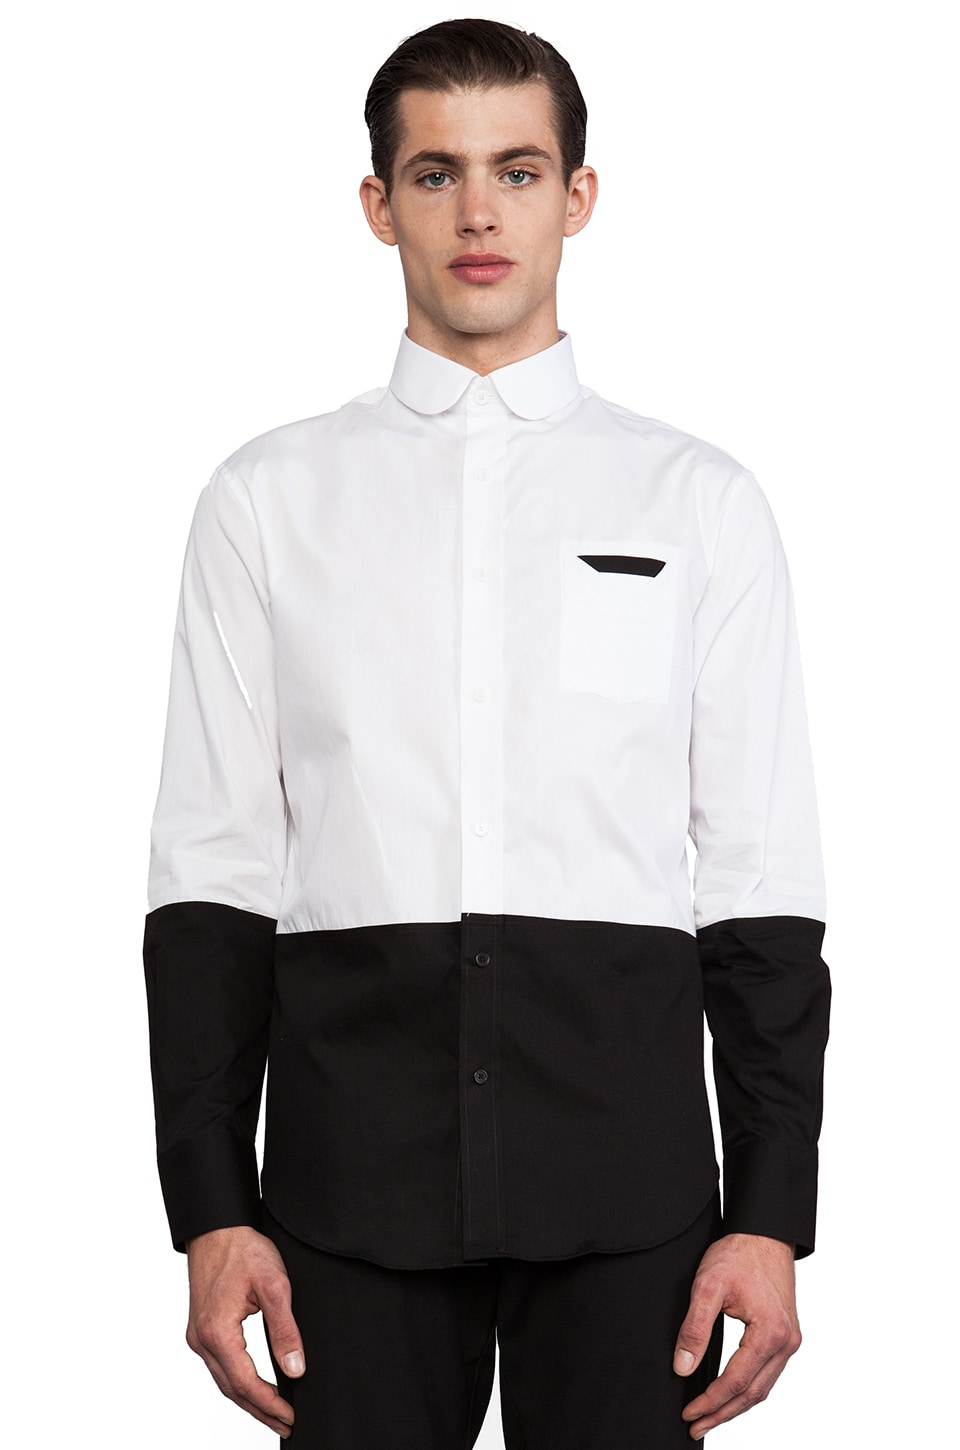 Munsoo Kwon Two Tone Shirt in White & Black